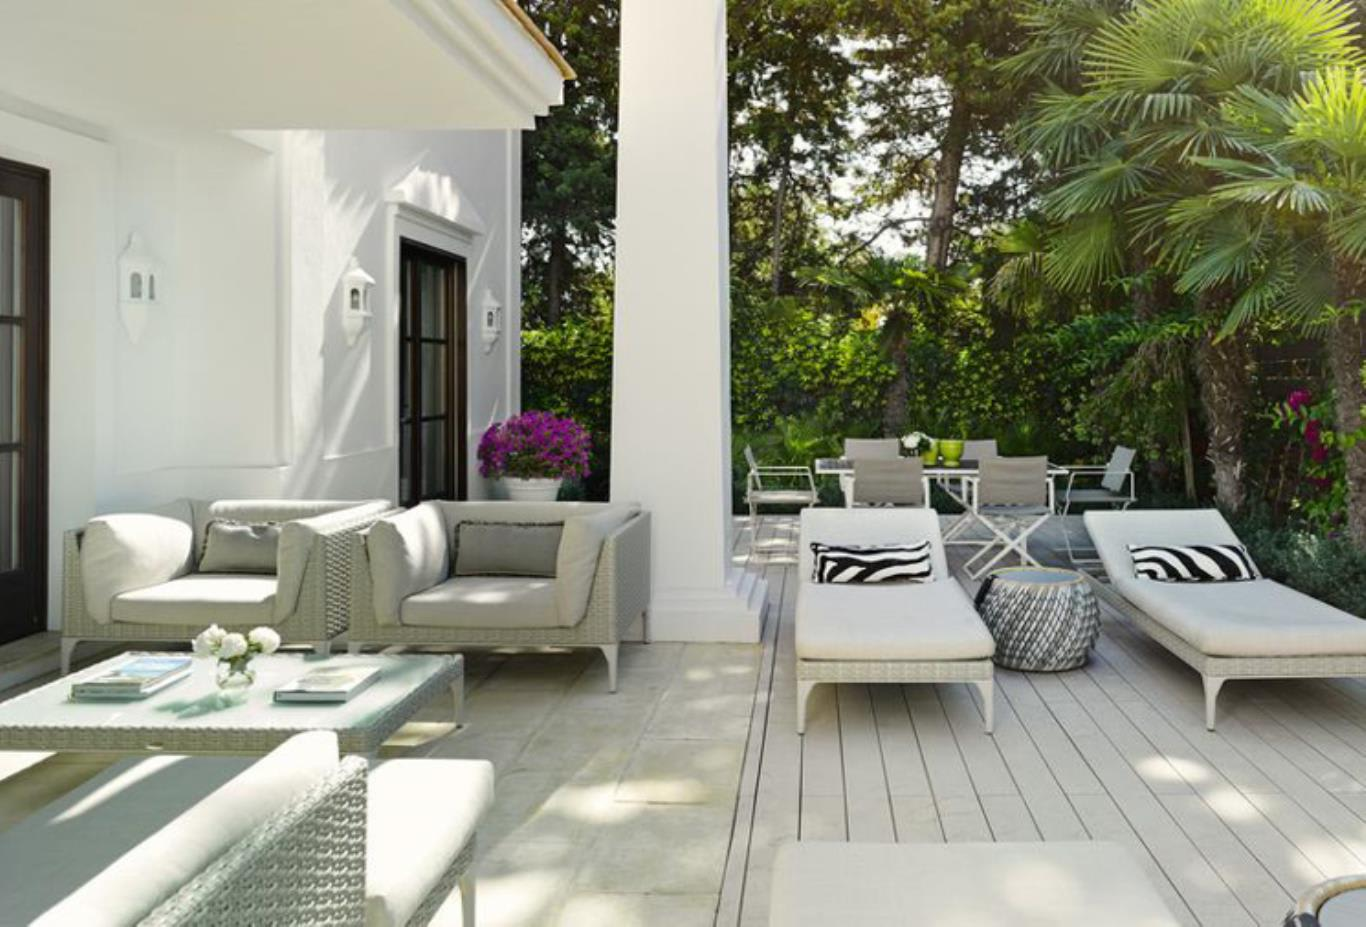 3 Bedroom Villa sundeck